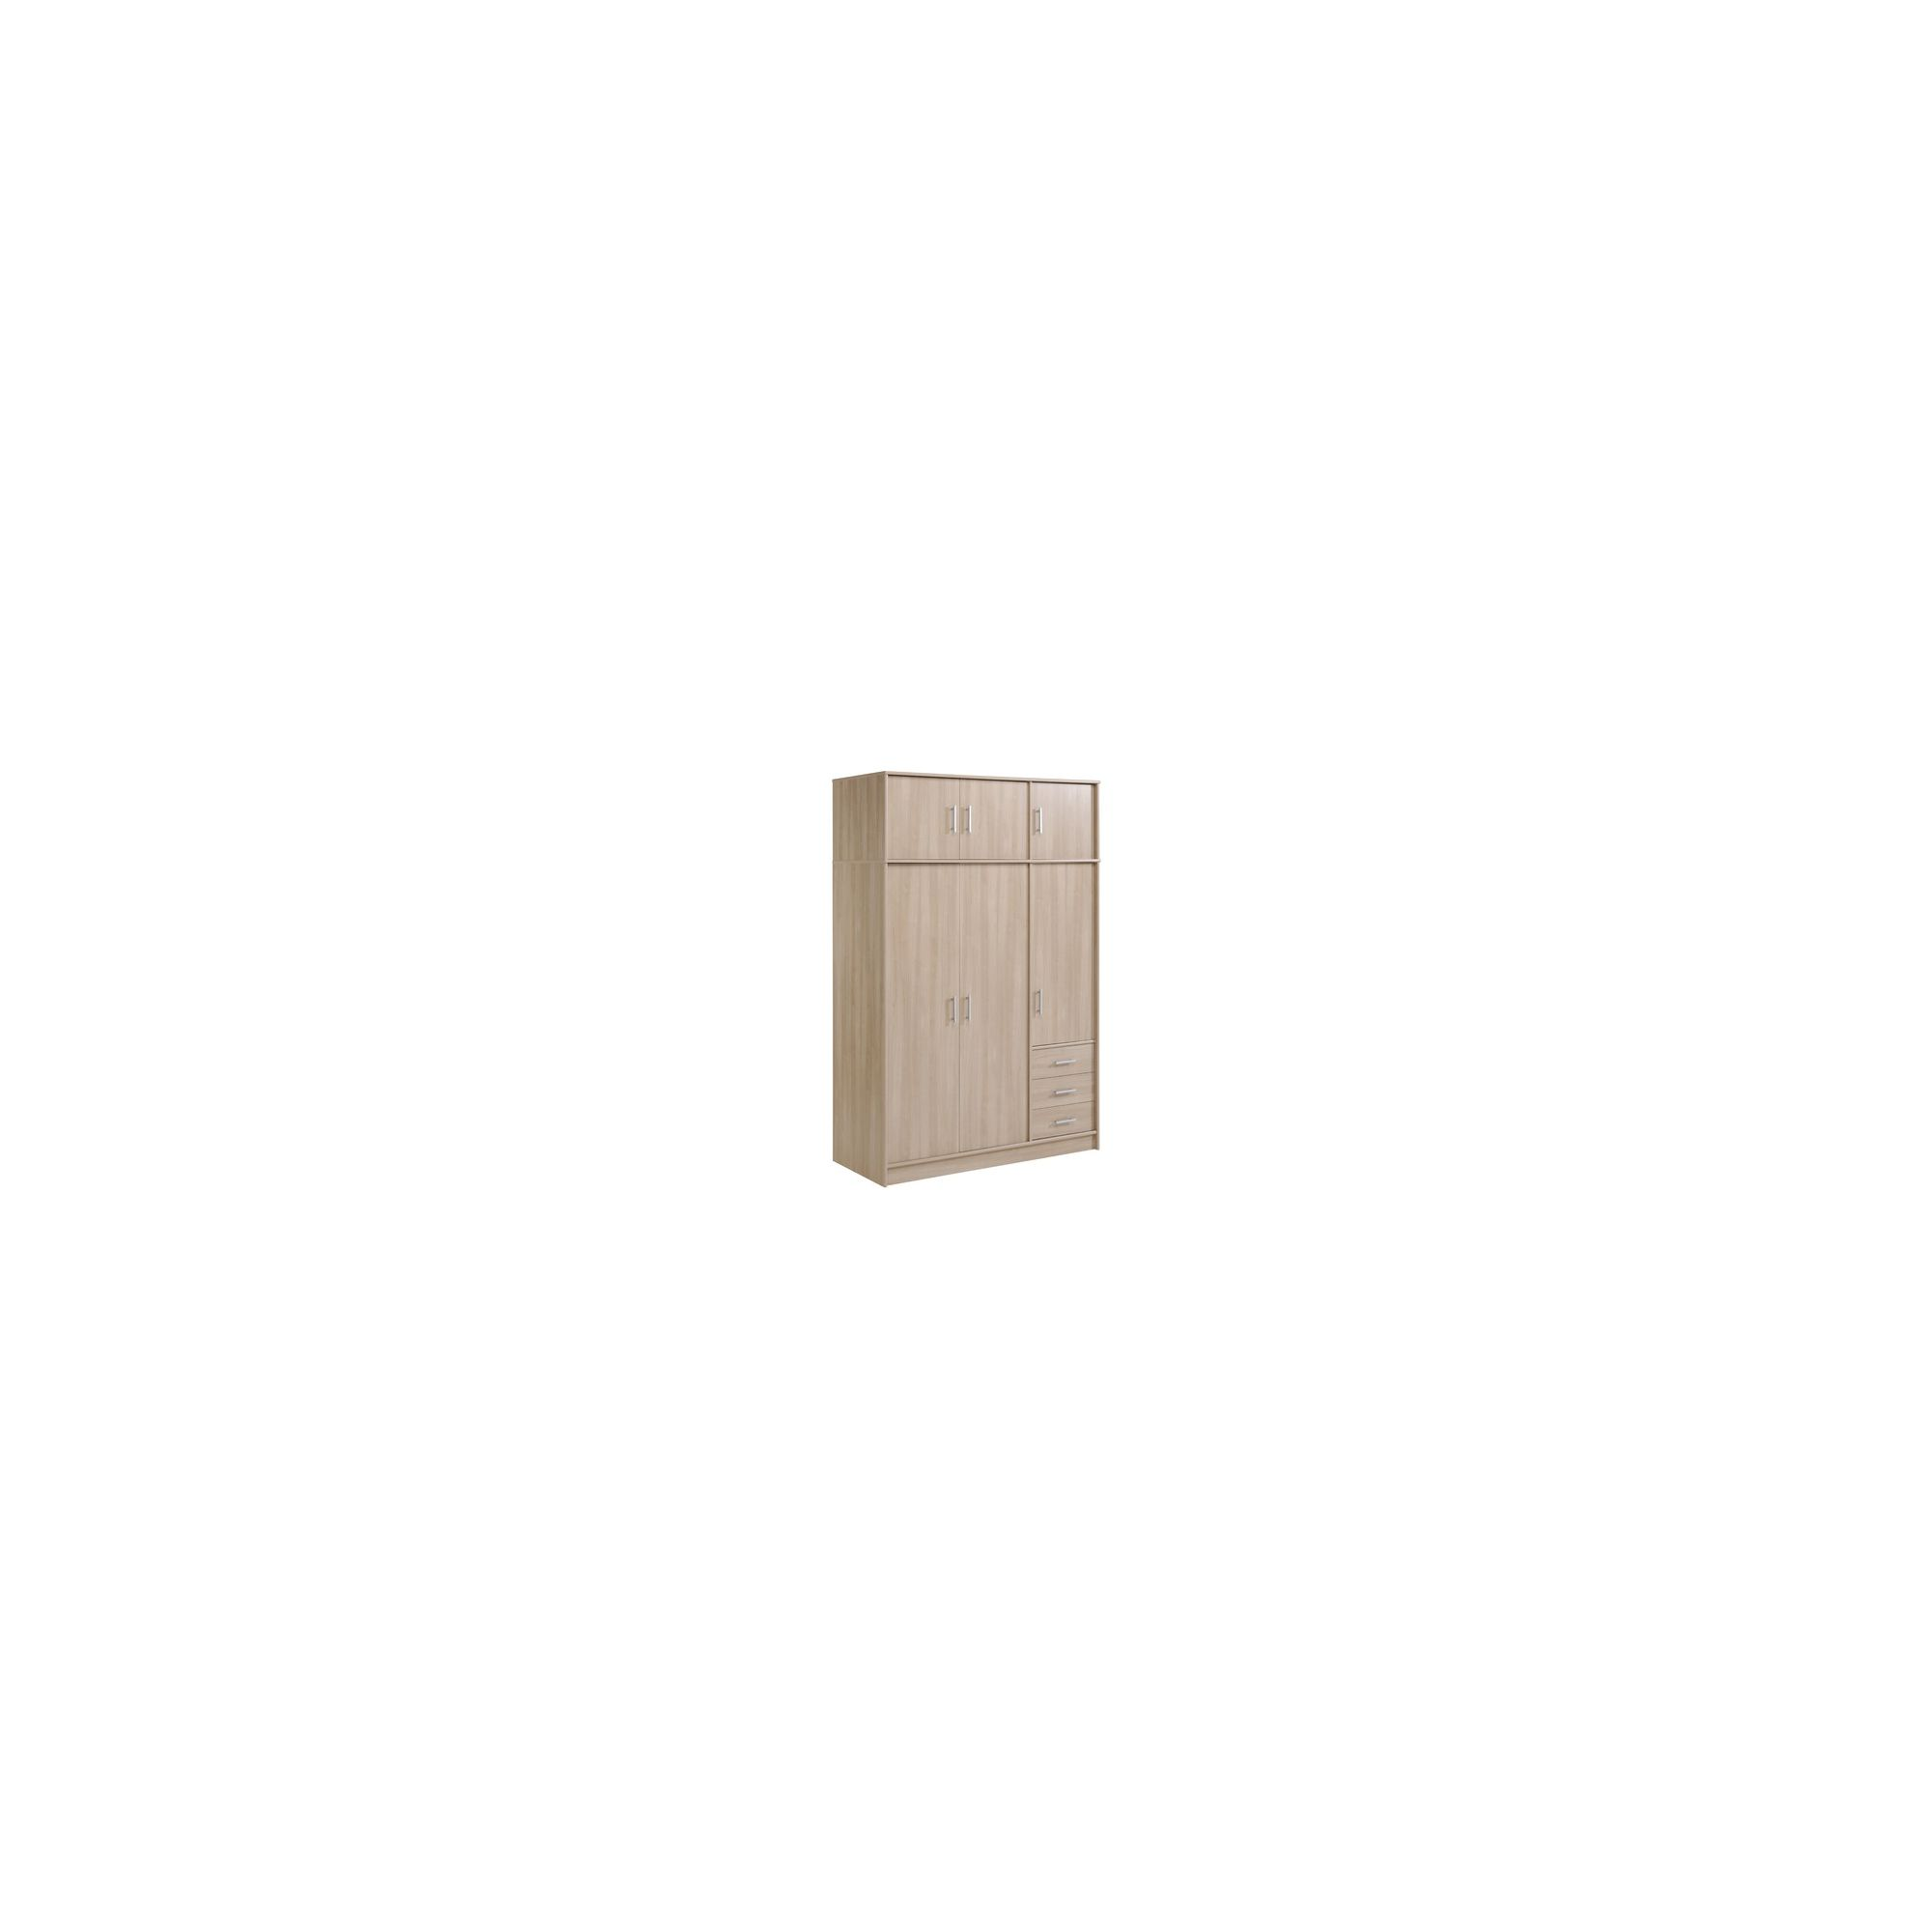 Parisot Essential Wardrobe with 6 Doors and 3 Drawers - Coffee Effect at Tescos Direct